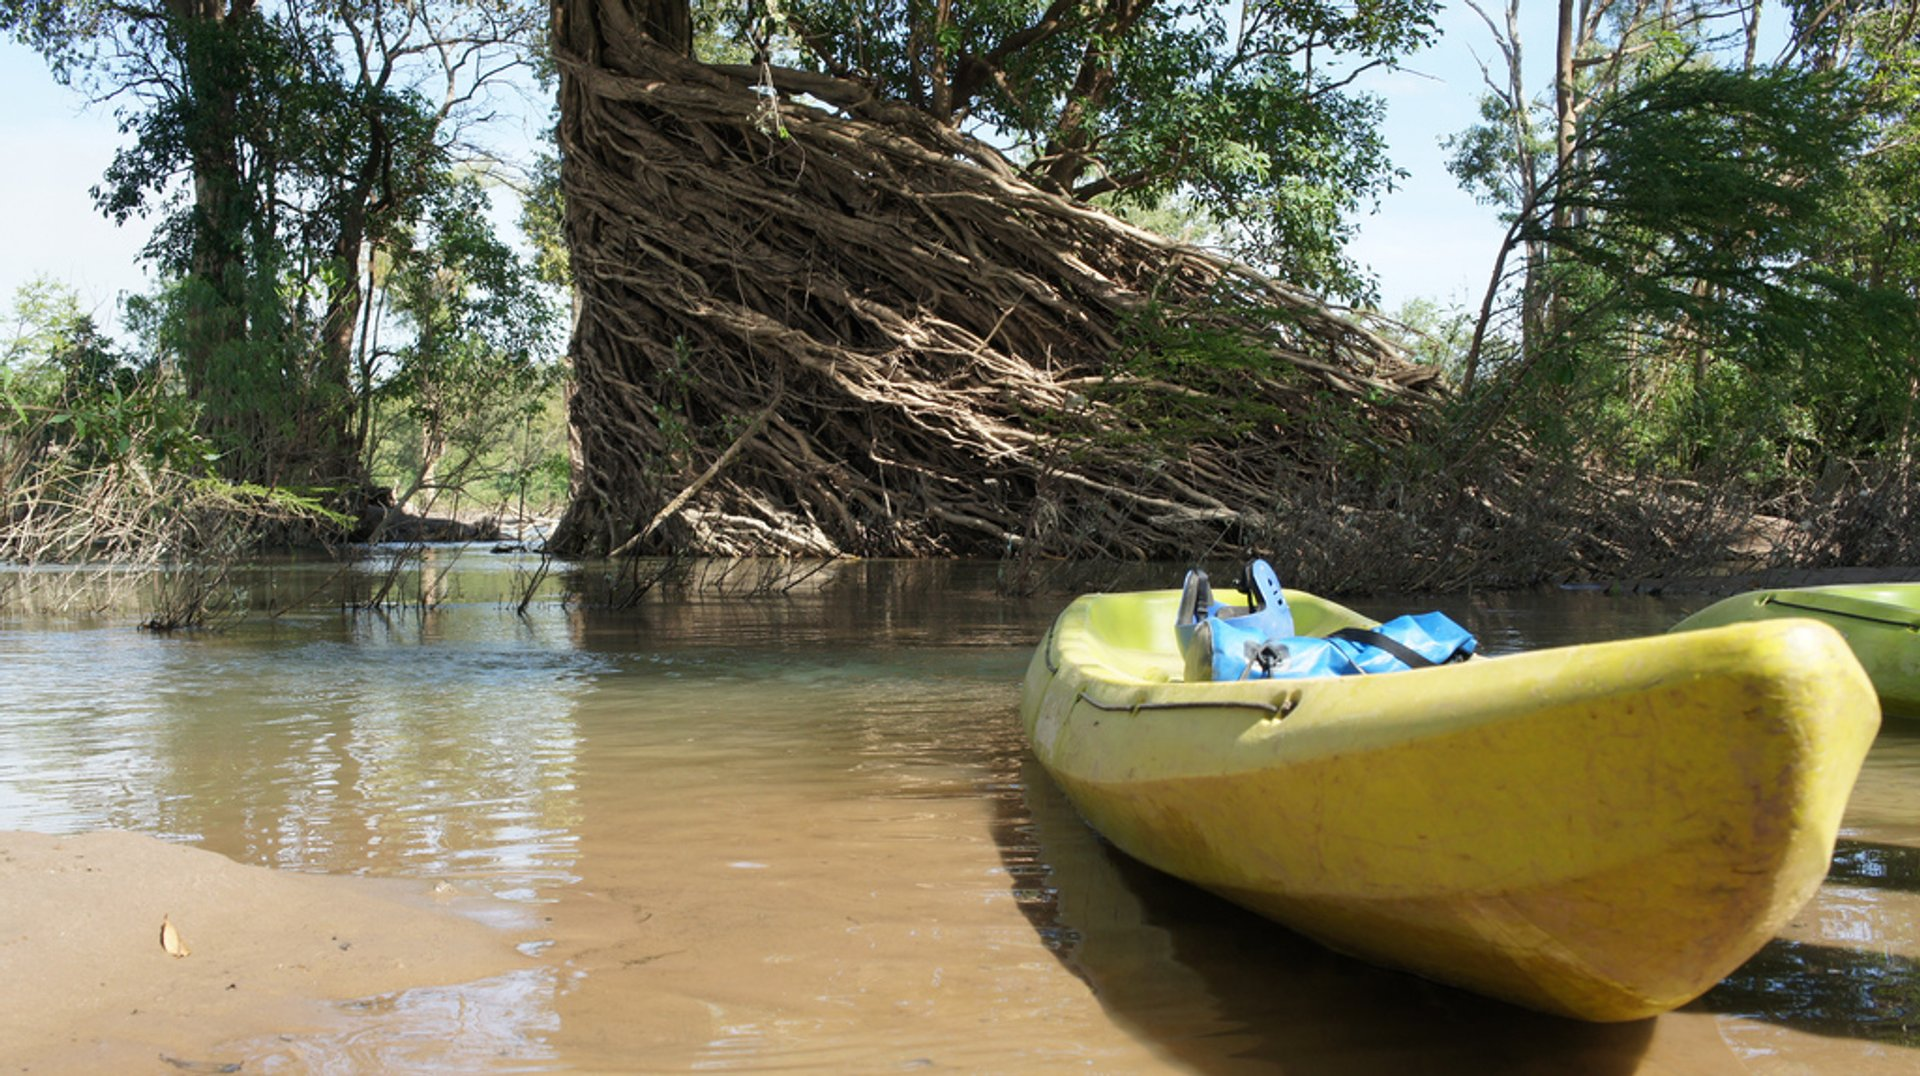 Kayaking in Cambodia 2020 - Best Time